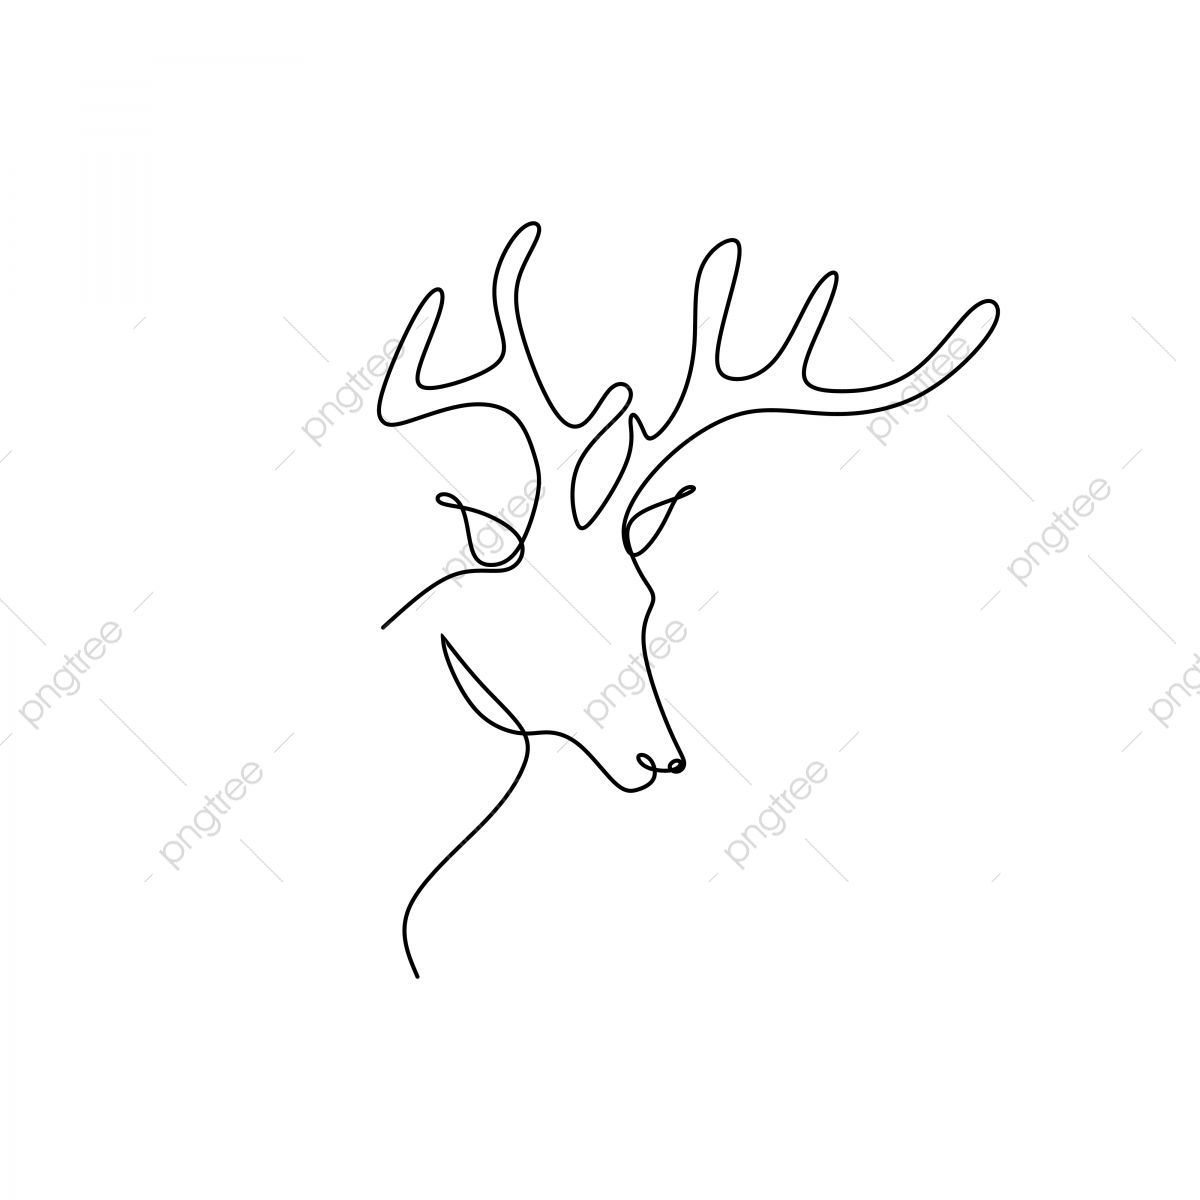 Continuous Line Drawing Of A Deer Head Line Icon Sketch Png And Vector With Transparent Background For Free Download Continuous Line Drawing Line Drawing Continuous Line